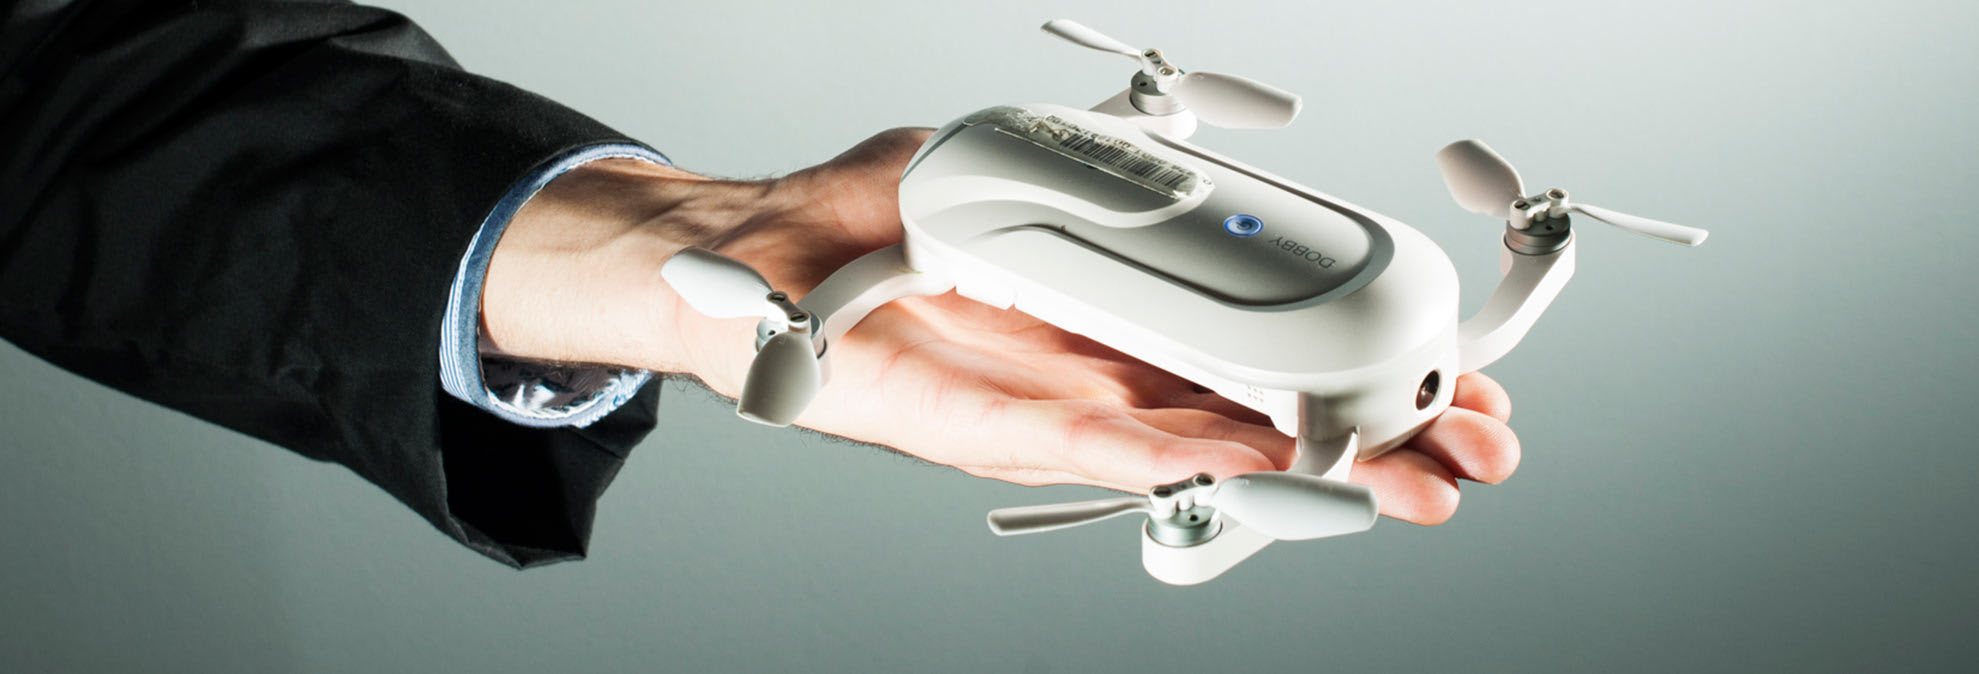 How to Buy a Drone of Your Own